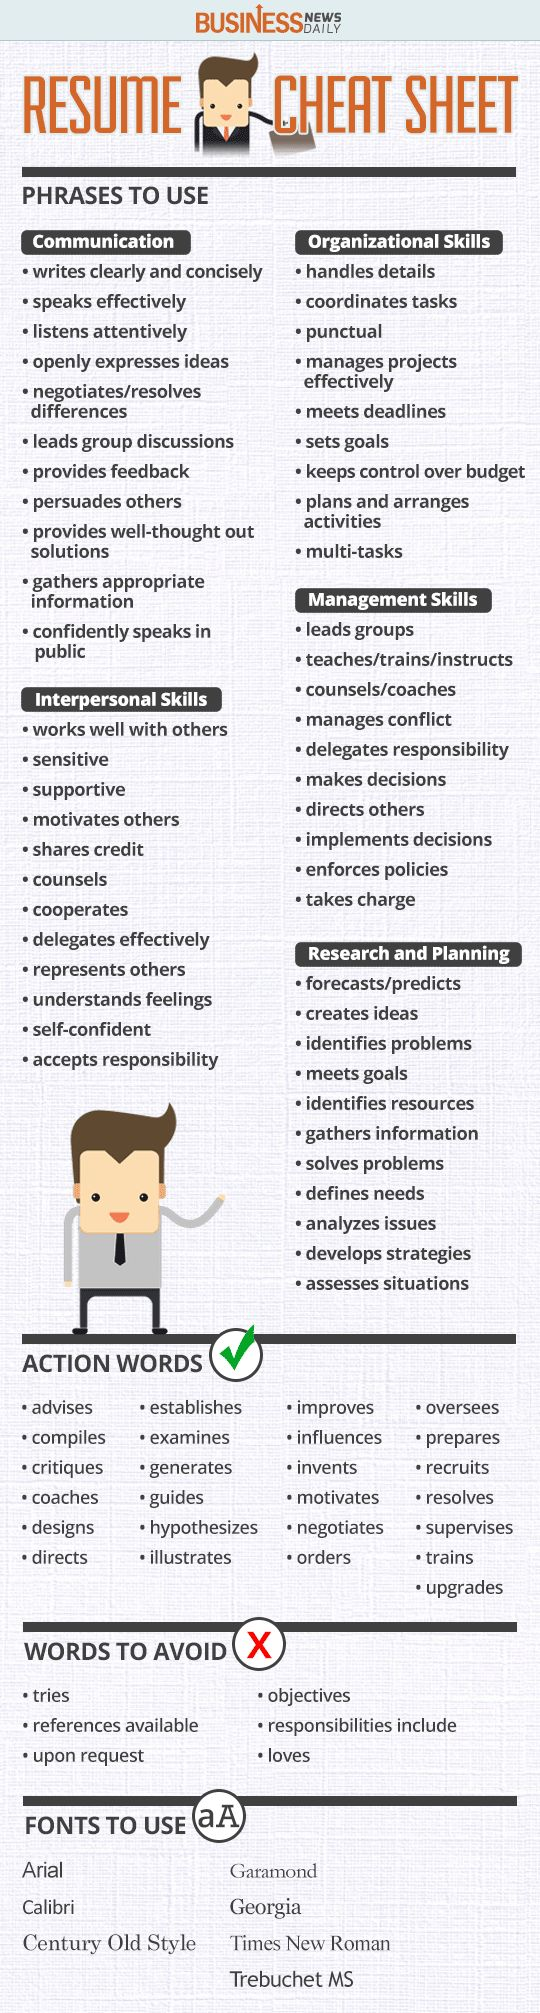 Opposenewapstandardsus  Inspiring  Ideas About Resume On Pinterest  Cv Format Resume Cv And  With Fetching Resume Cheat Sheet Infographic Andrews Almost Done With A Complete Unit On Employment Which With Delightful Waiter Resume Skills Also It Resume Summary In Addition Resumes That Get Jobs And Define Resume For A Job As Well As Sas Resume Additionally Sales Resume Objective Examples From Pinterestcom With Opposenewapstandardsus  Fetching  Ideas About Resume On Pinterest  Cv Format Resume Cv And  With Delightful Resume Cheat Sheet Infographic Andrews Almost Done With A Complete Unit On Employment Which And Inspiring Waiter Resume Skills Also It Resume Summary In Addition Resumes That Get Jobs From Pinterestcom